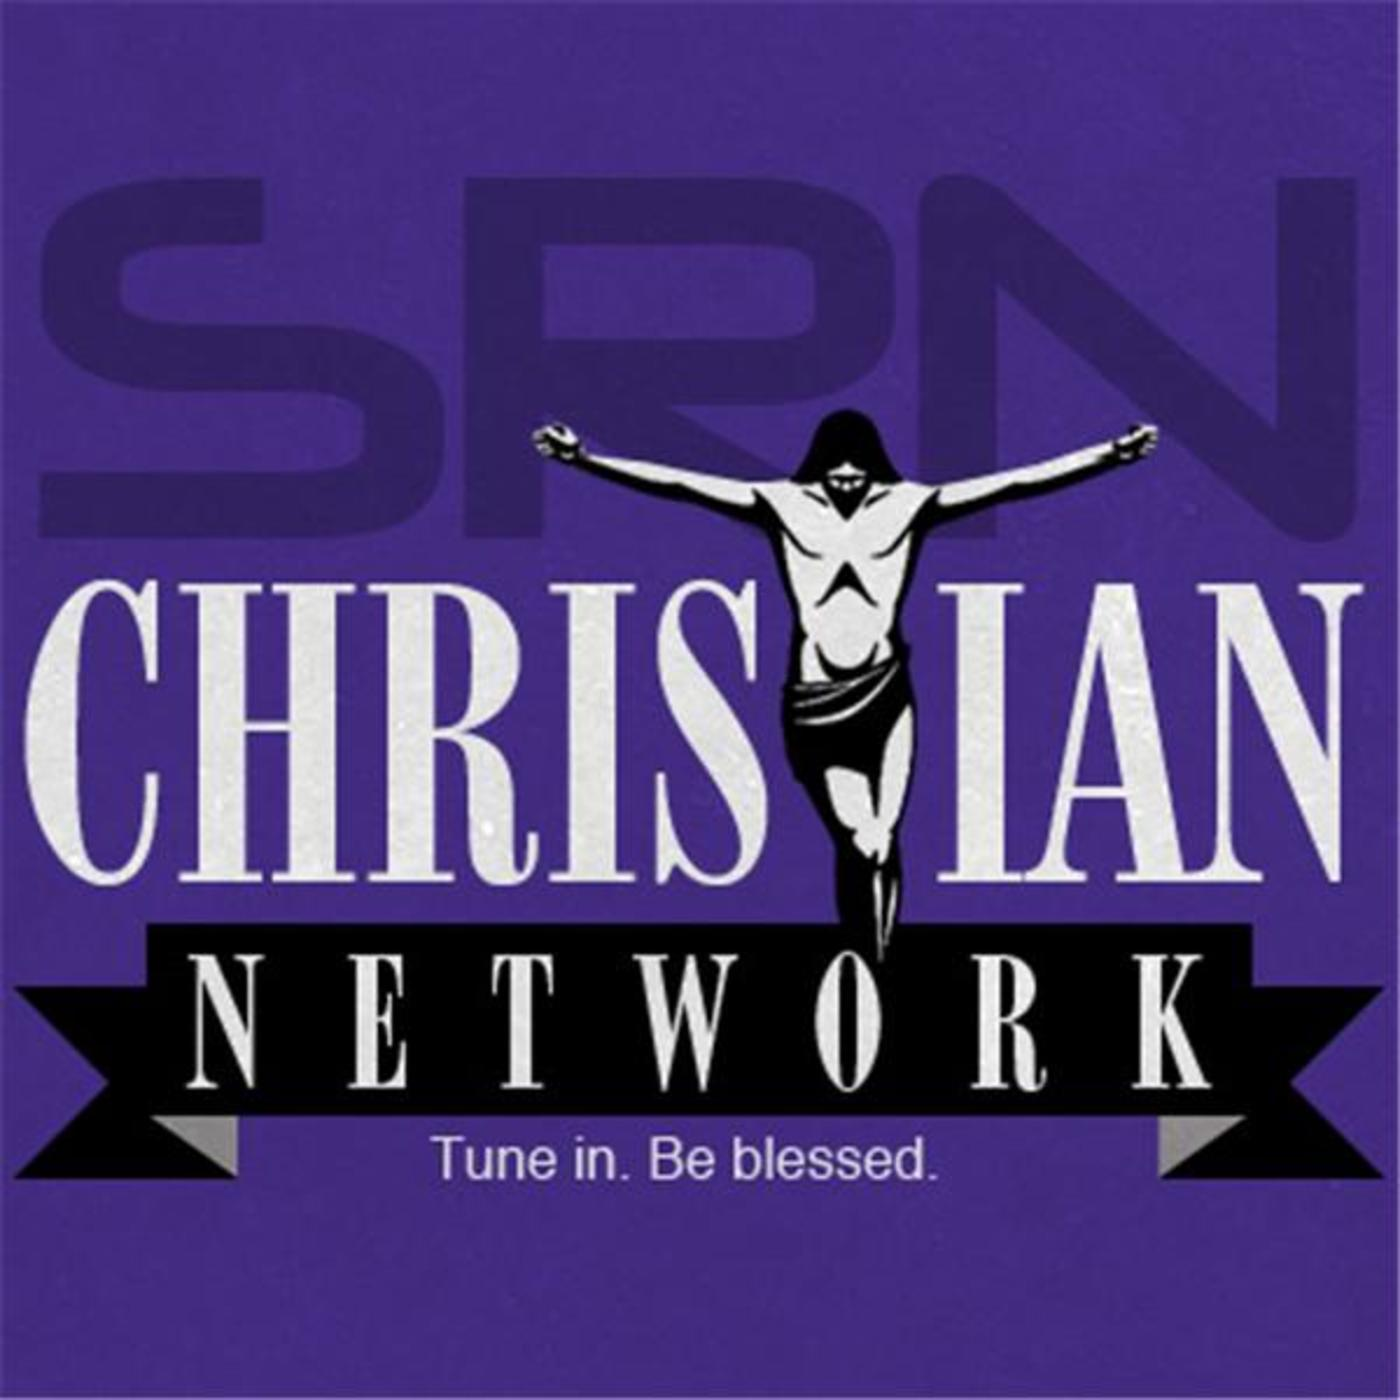 Survival Radio Christian Network